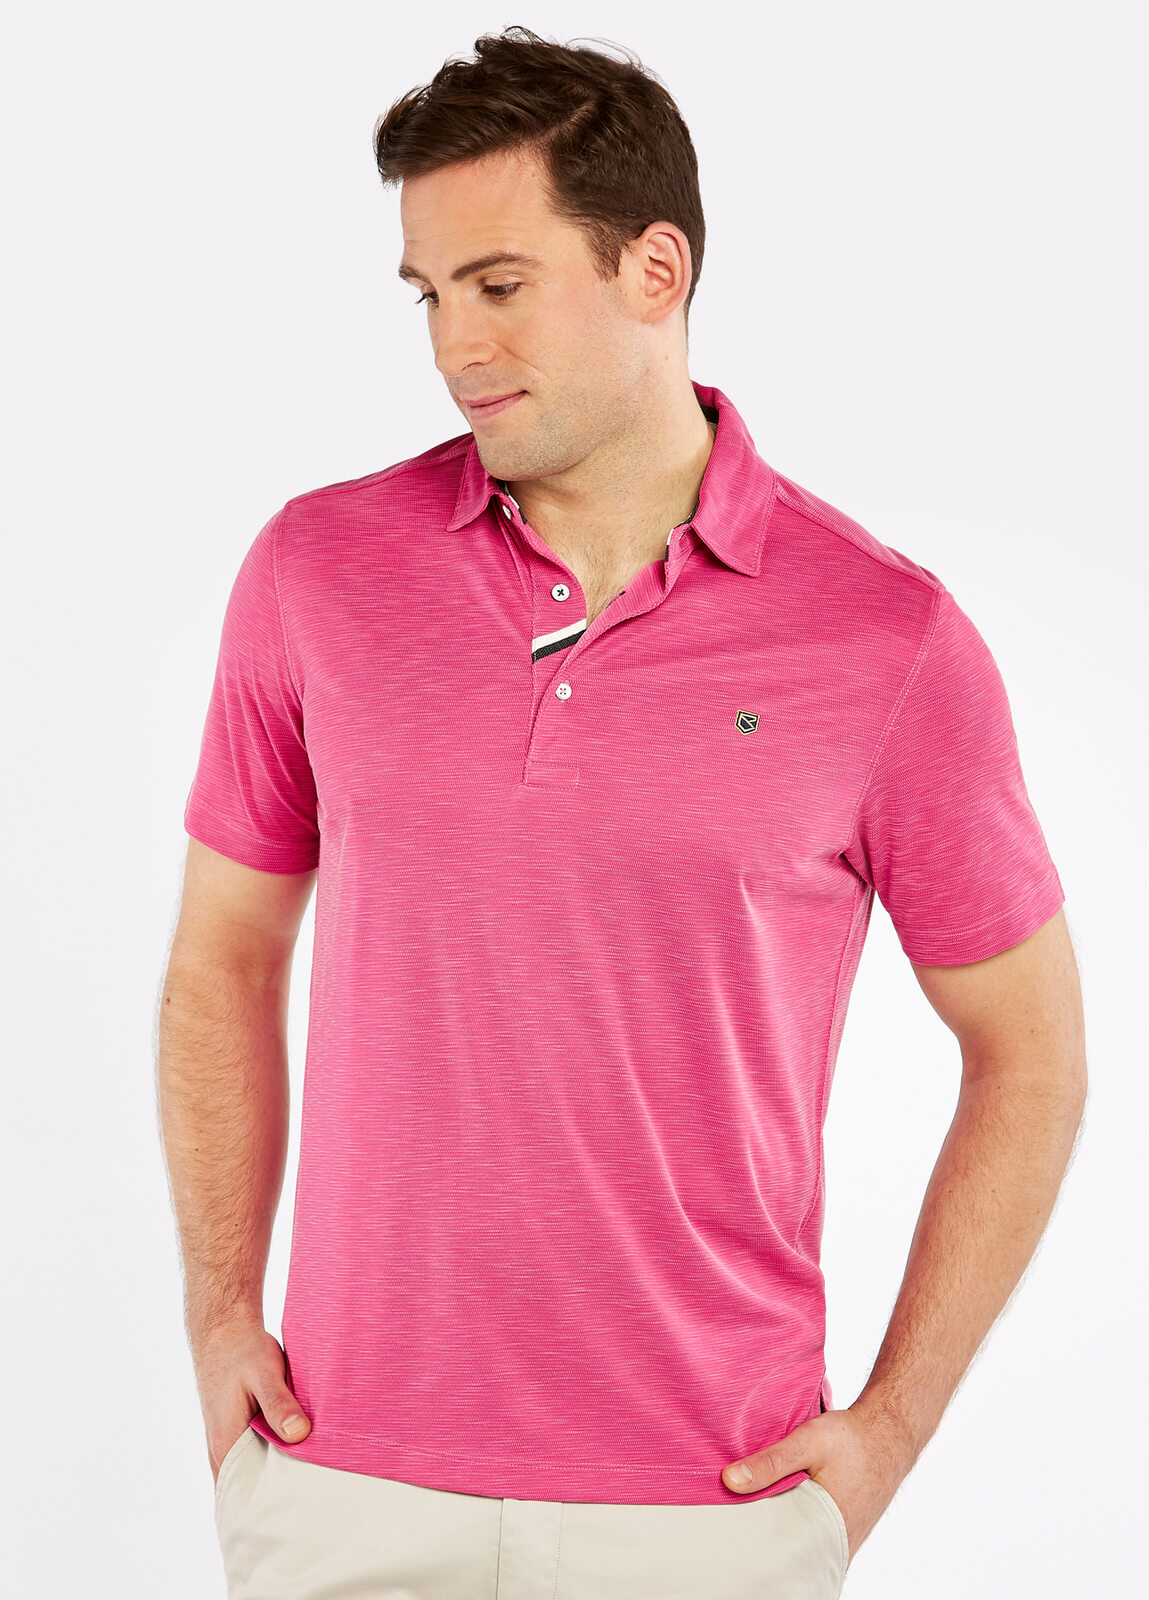 Corbally Polo Shirt - Orchid